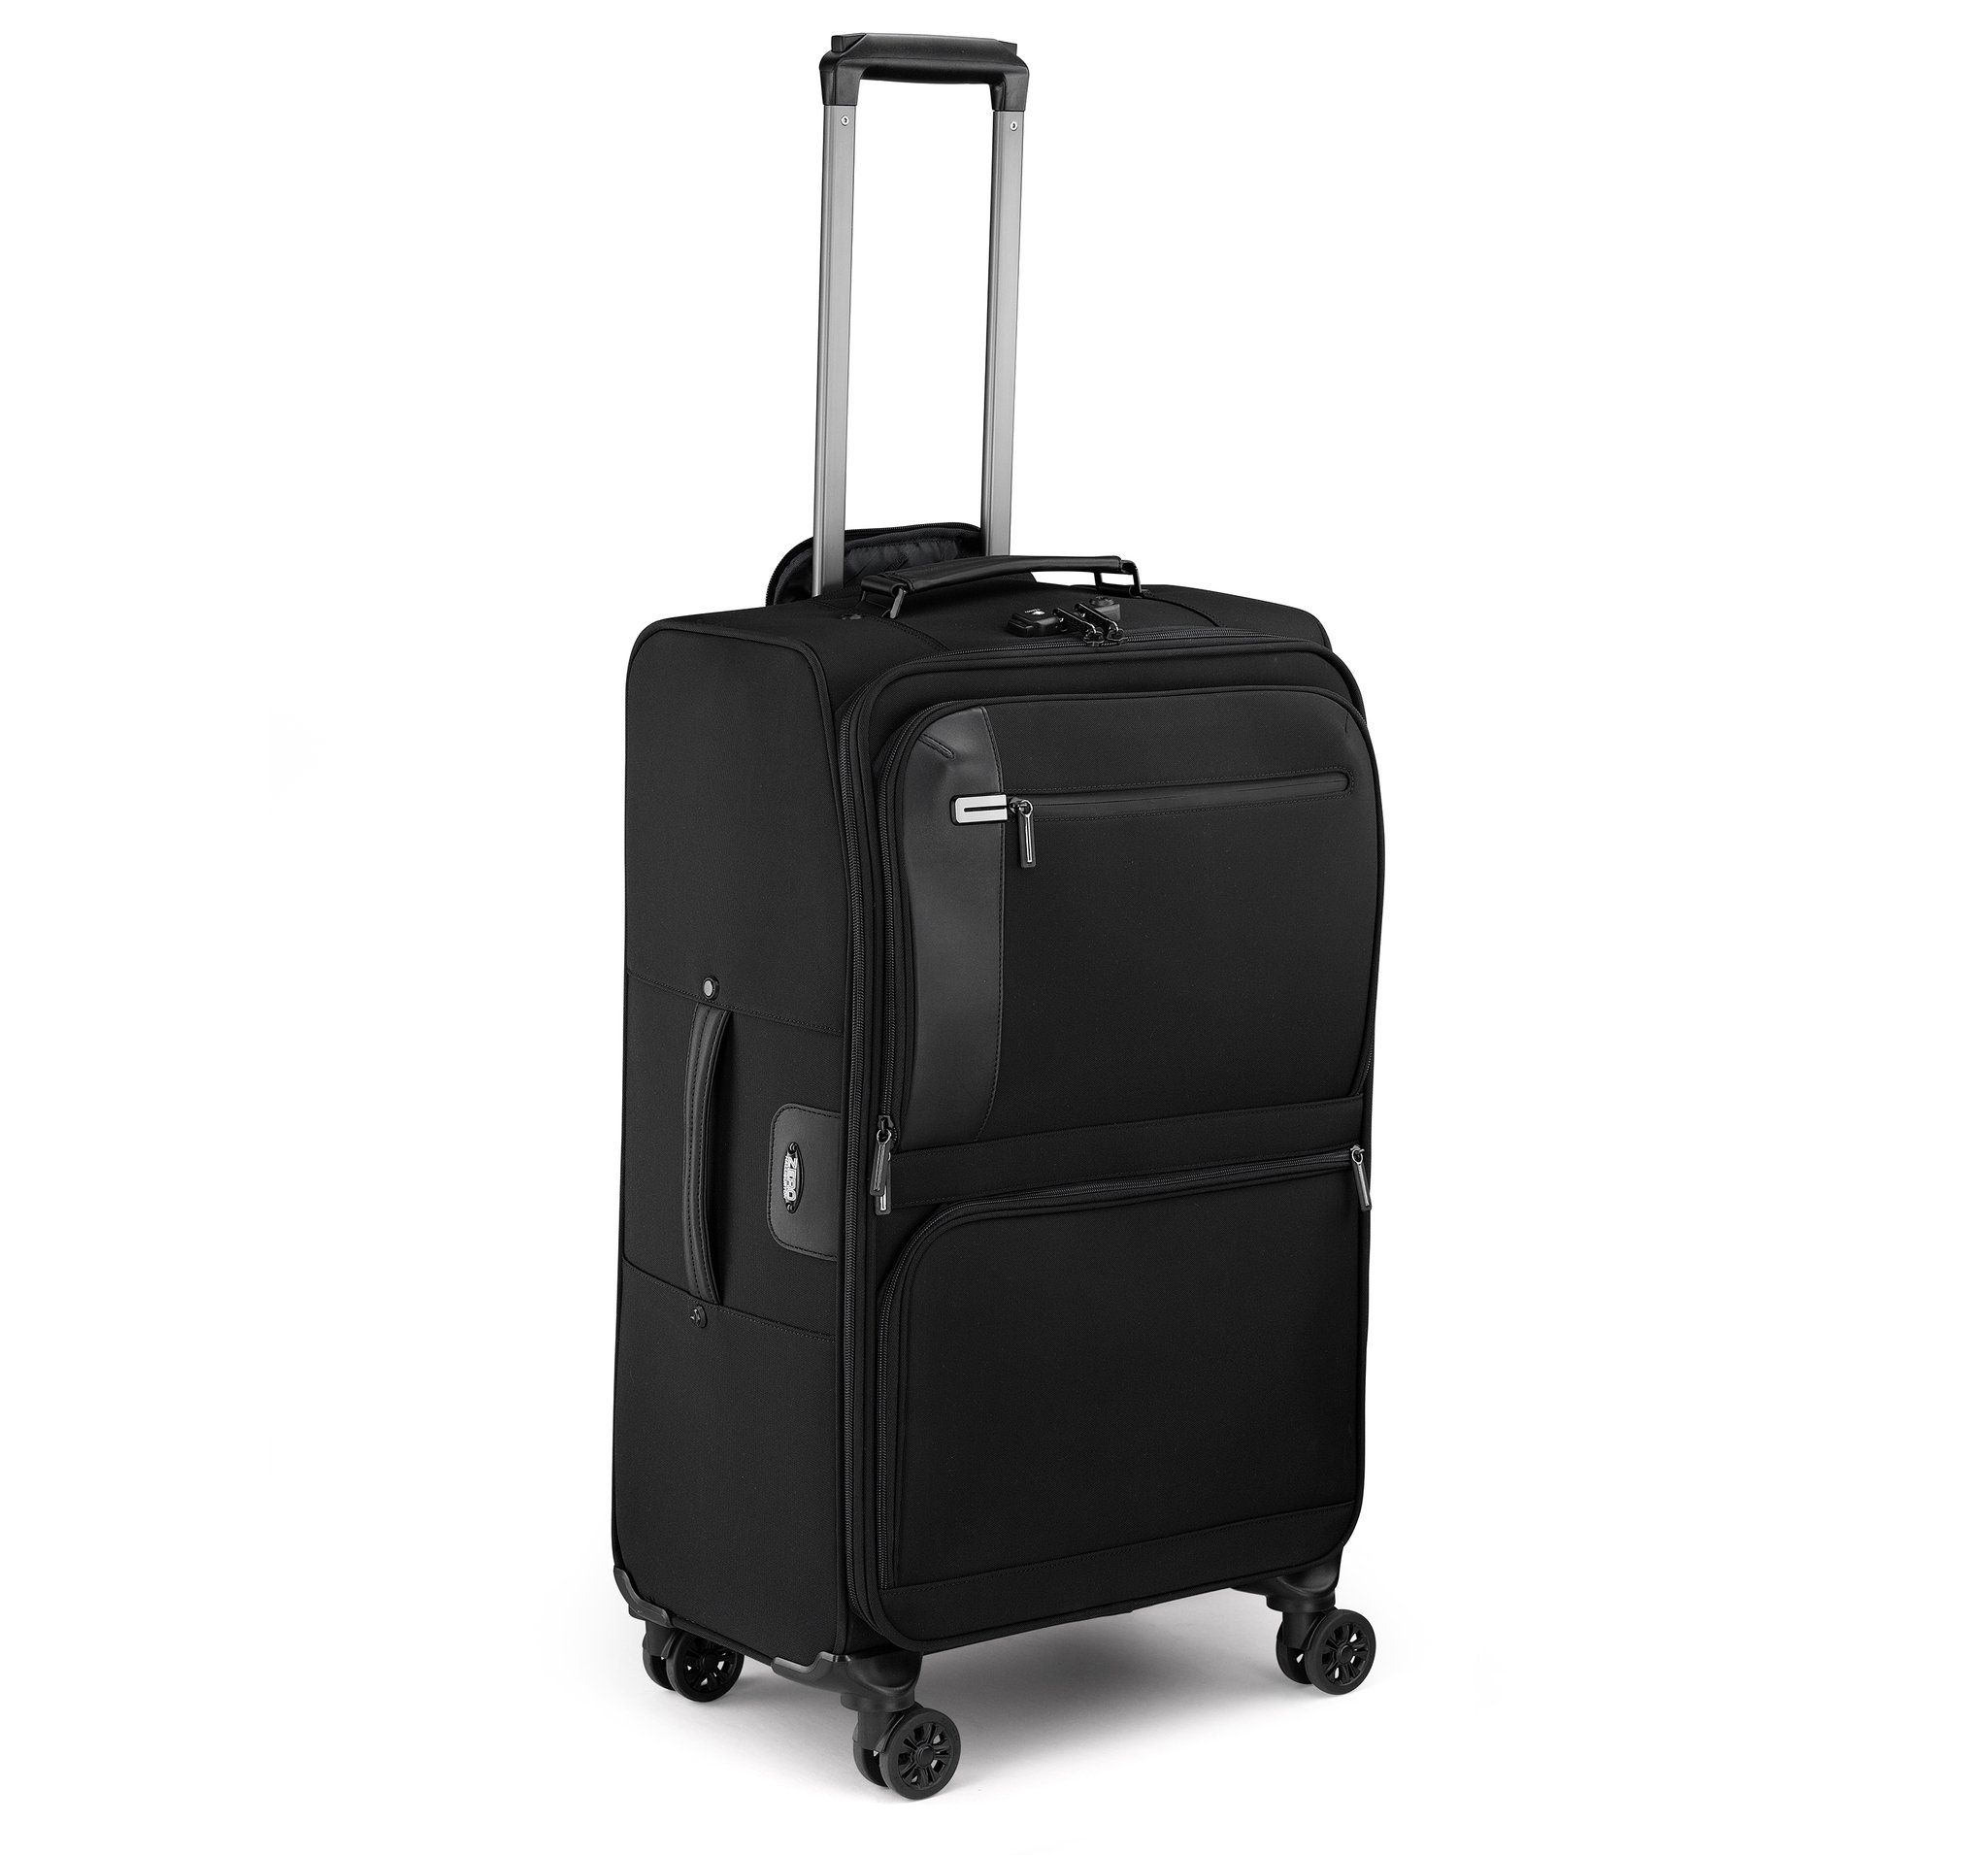 PRF 3.0 - Large Upright Suitcase by Zero Halliburton (Color: Black)